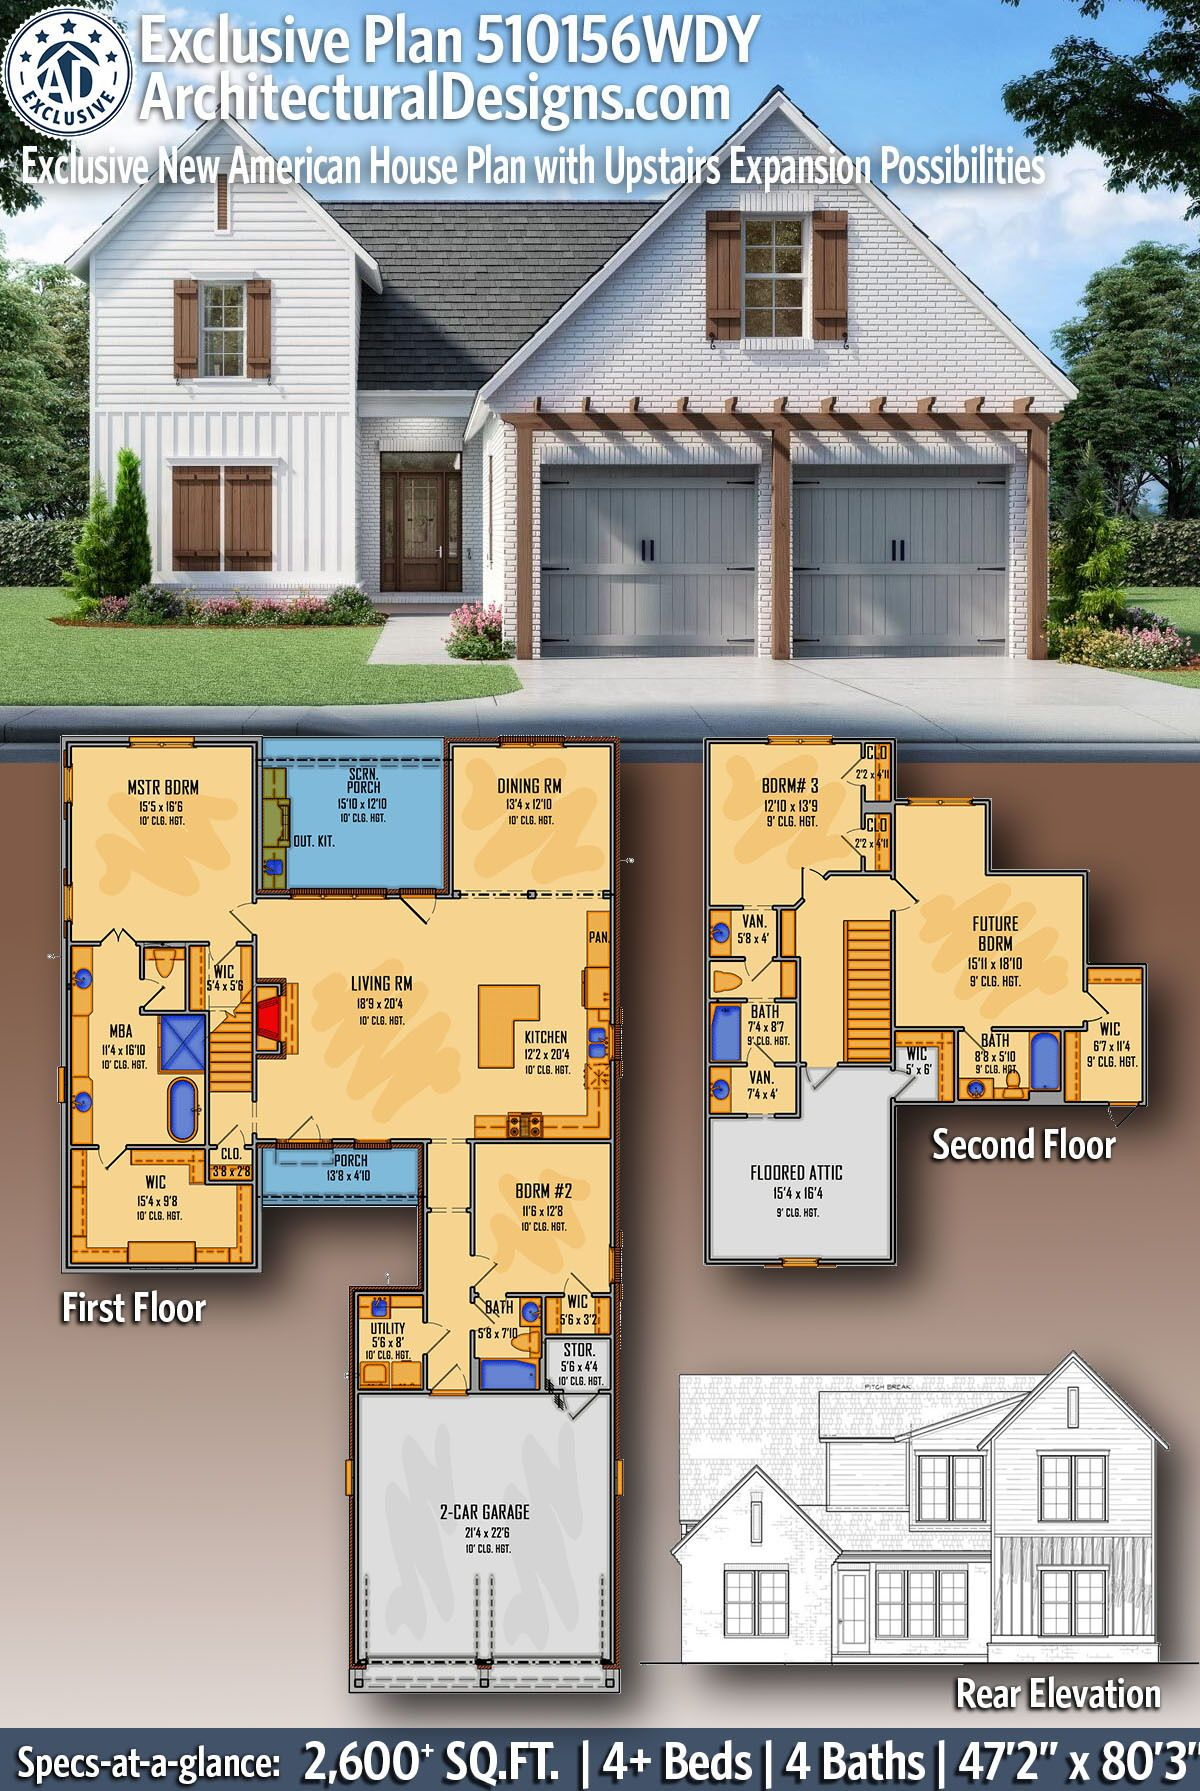 Plan 510156wdy Exclusive New American House Plan With Upstairs Expansion Possibilities In 2020 Exclusive House Plan American Houses House Plans